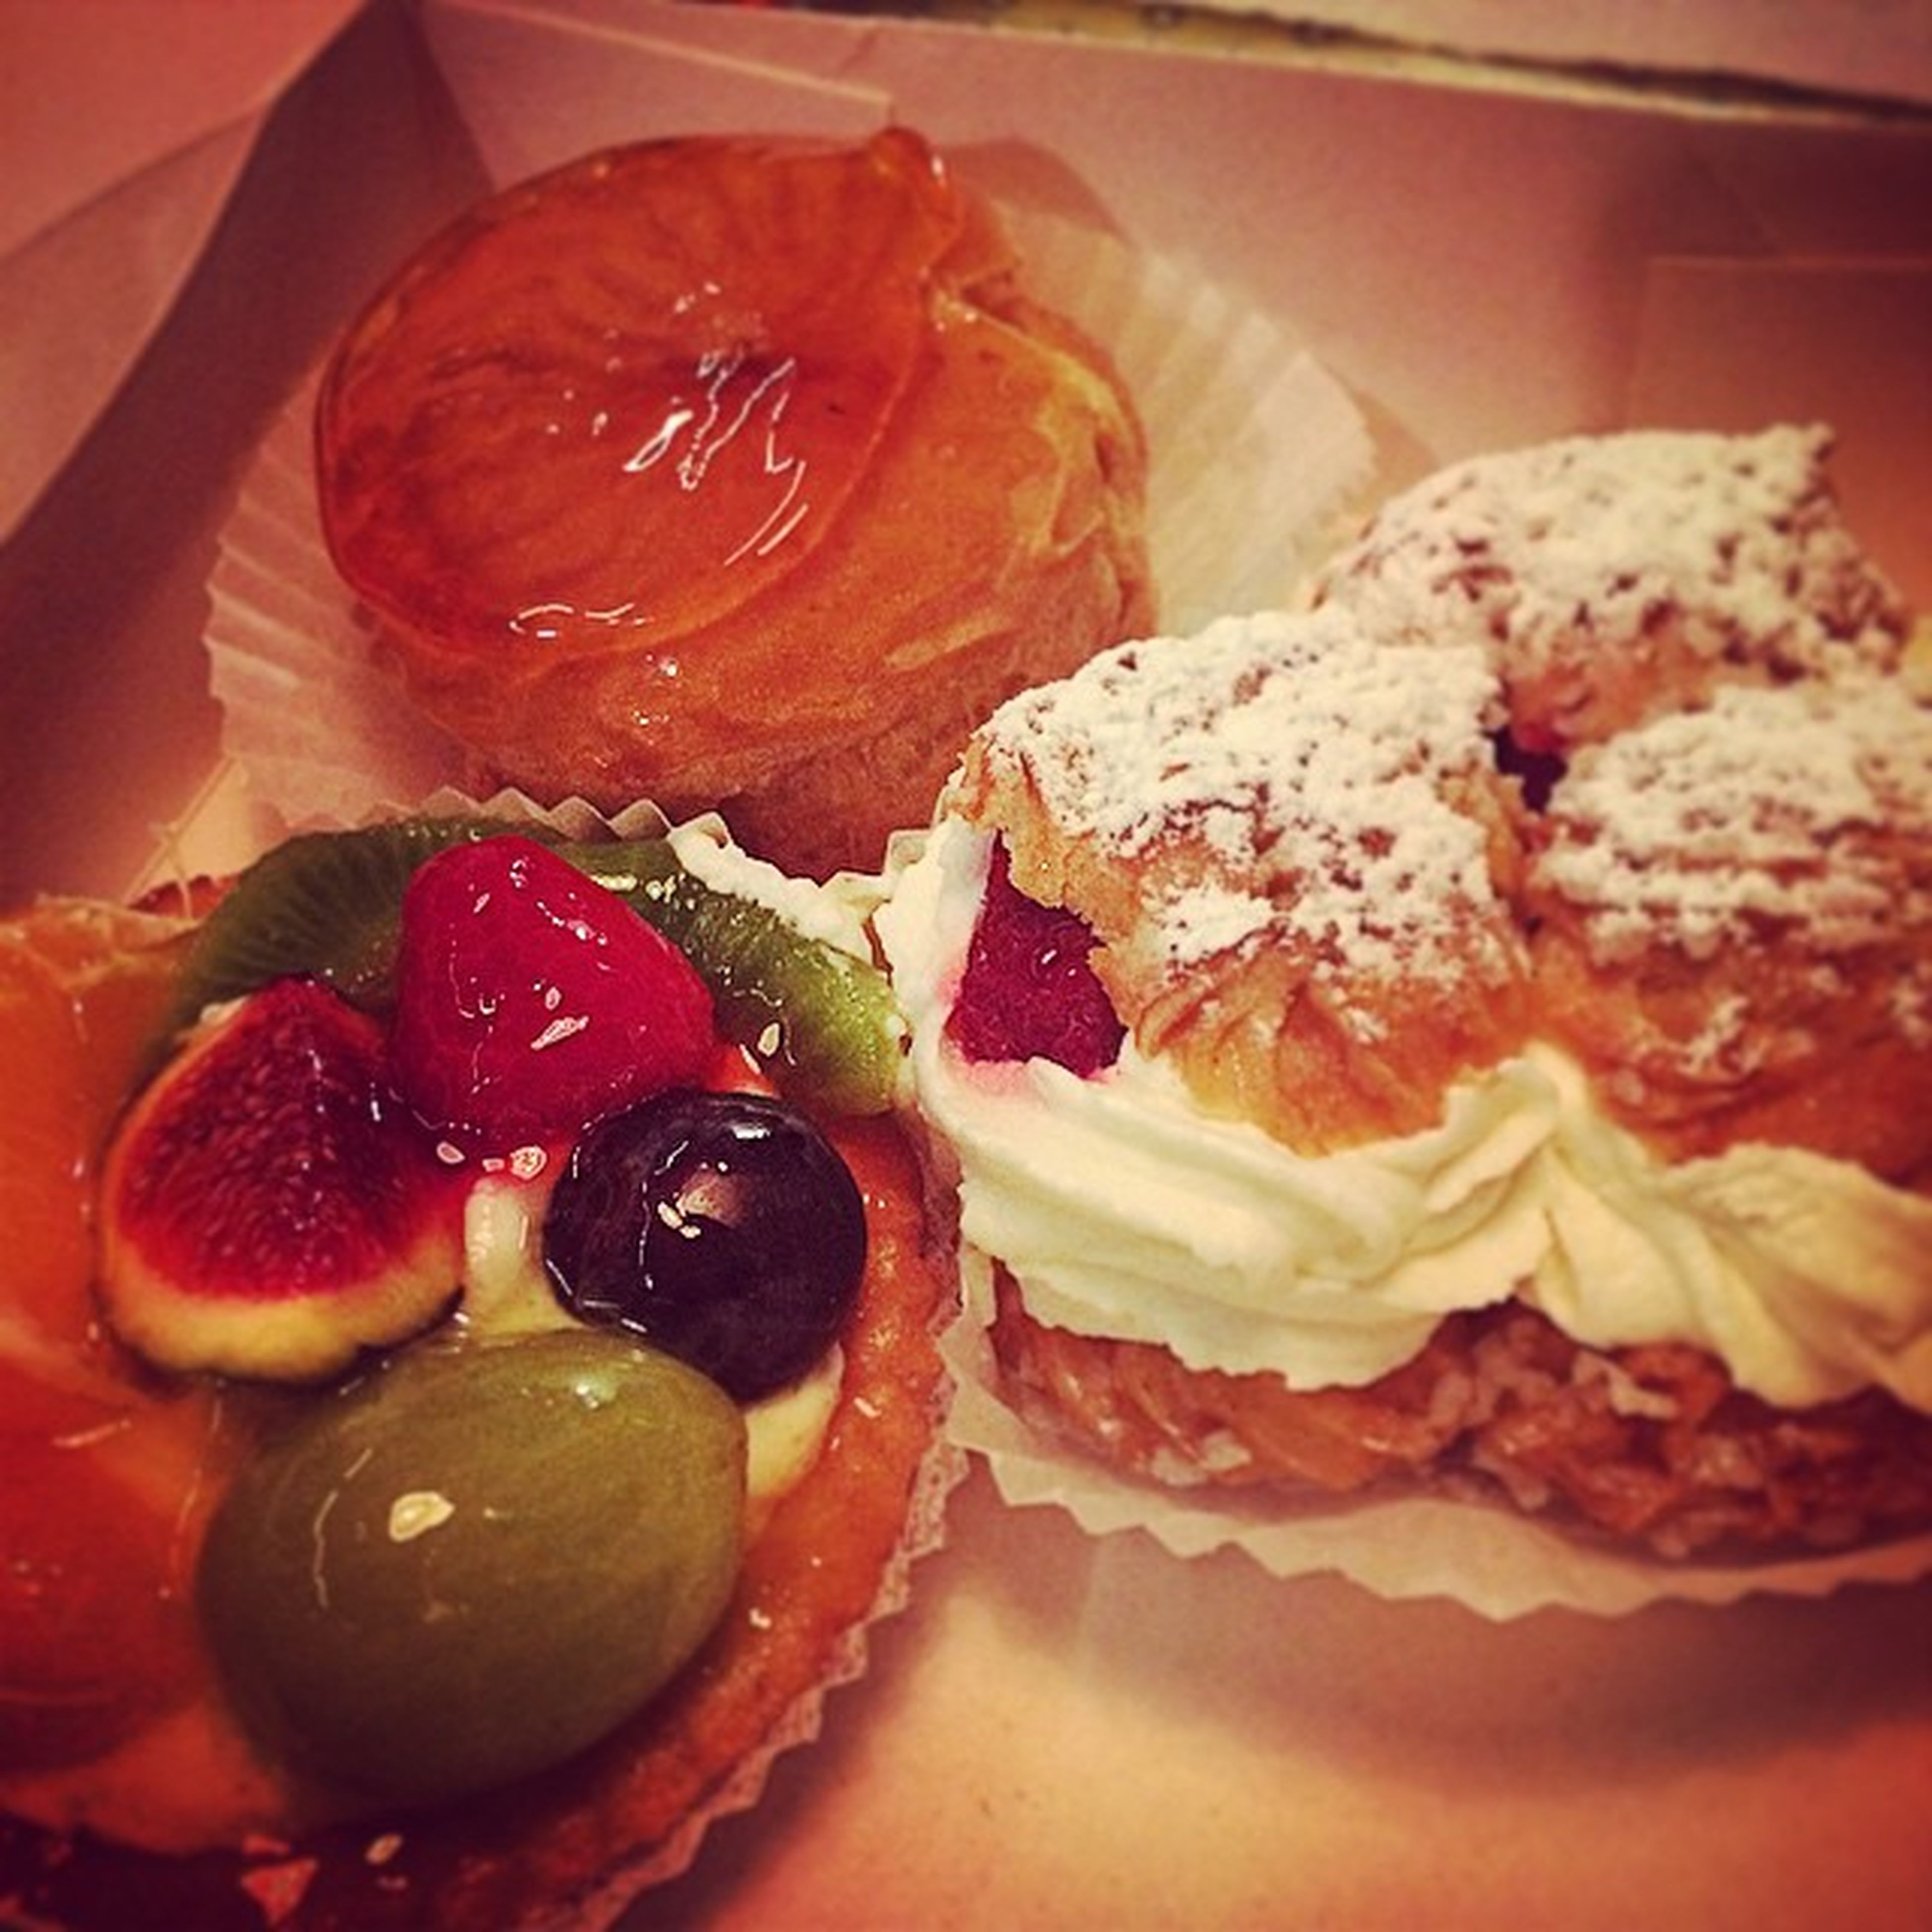 food and drink, food, freshness, indoors, ready-to-eat, sweet food, indulgence, still life, dessert, unhealthy eating, plate, close-up, serving size, strawberry, temptation, table, cake, fruit, baked, slice